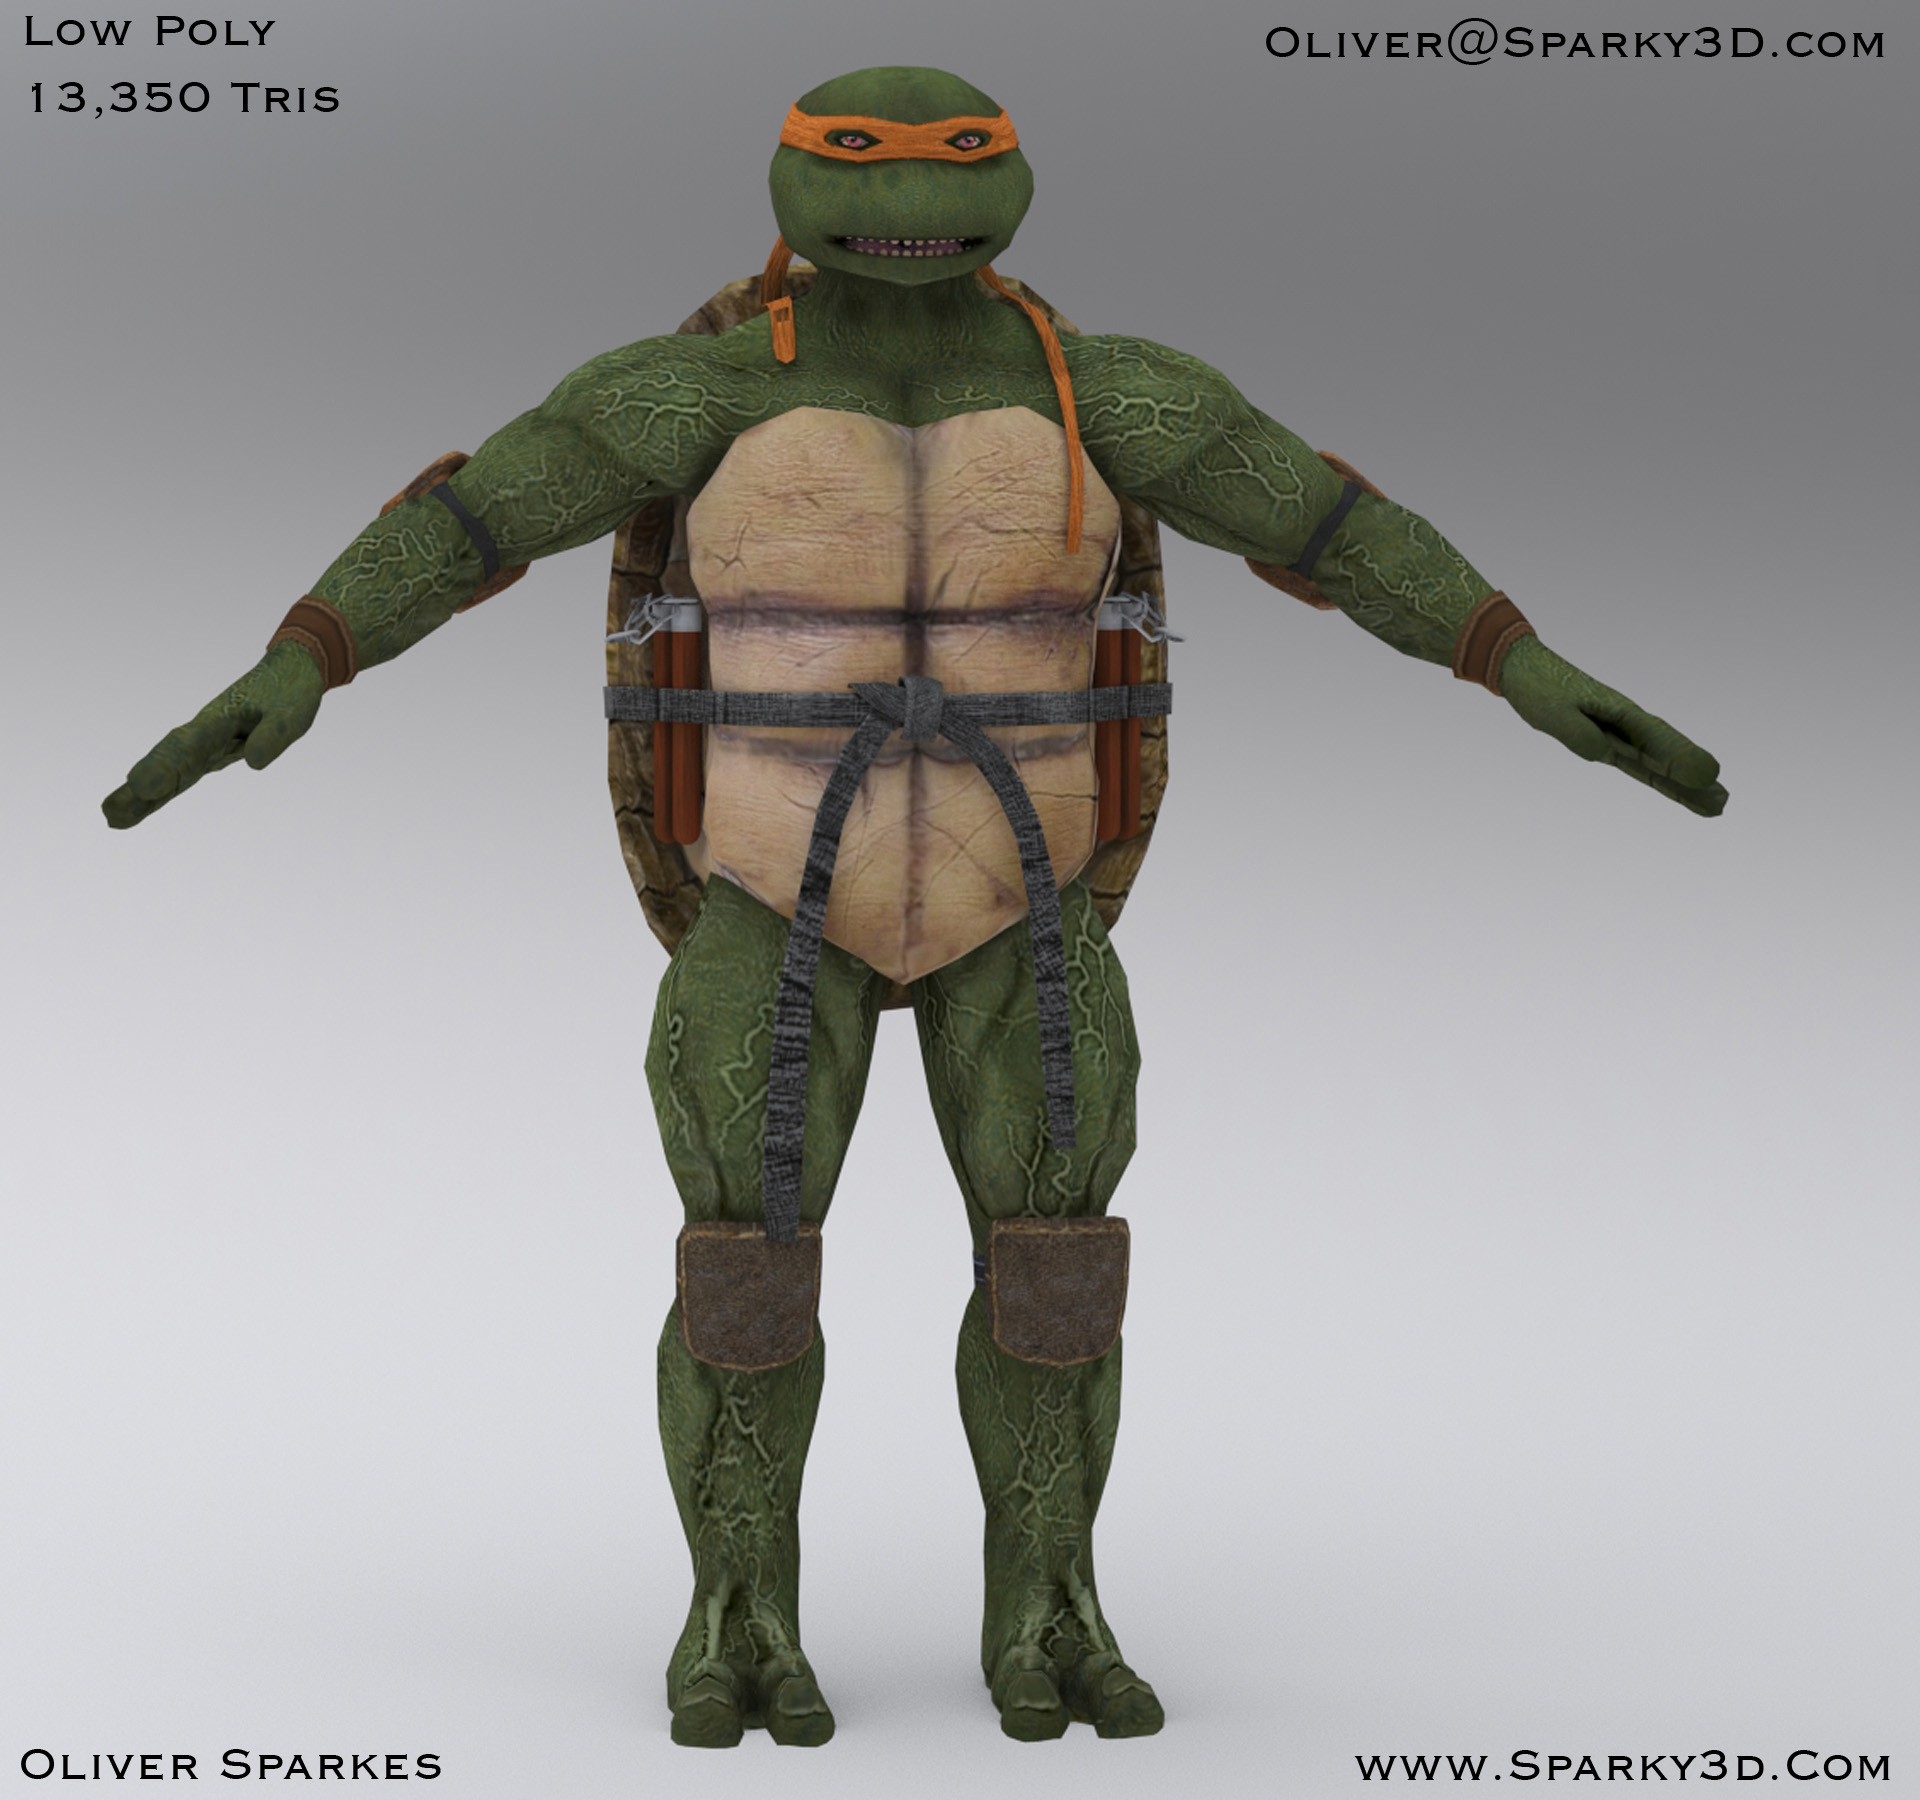 beauty_shot_turtle_low_poly.jpg